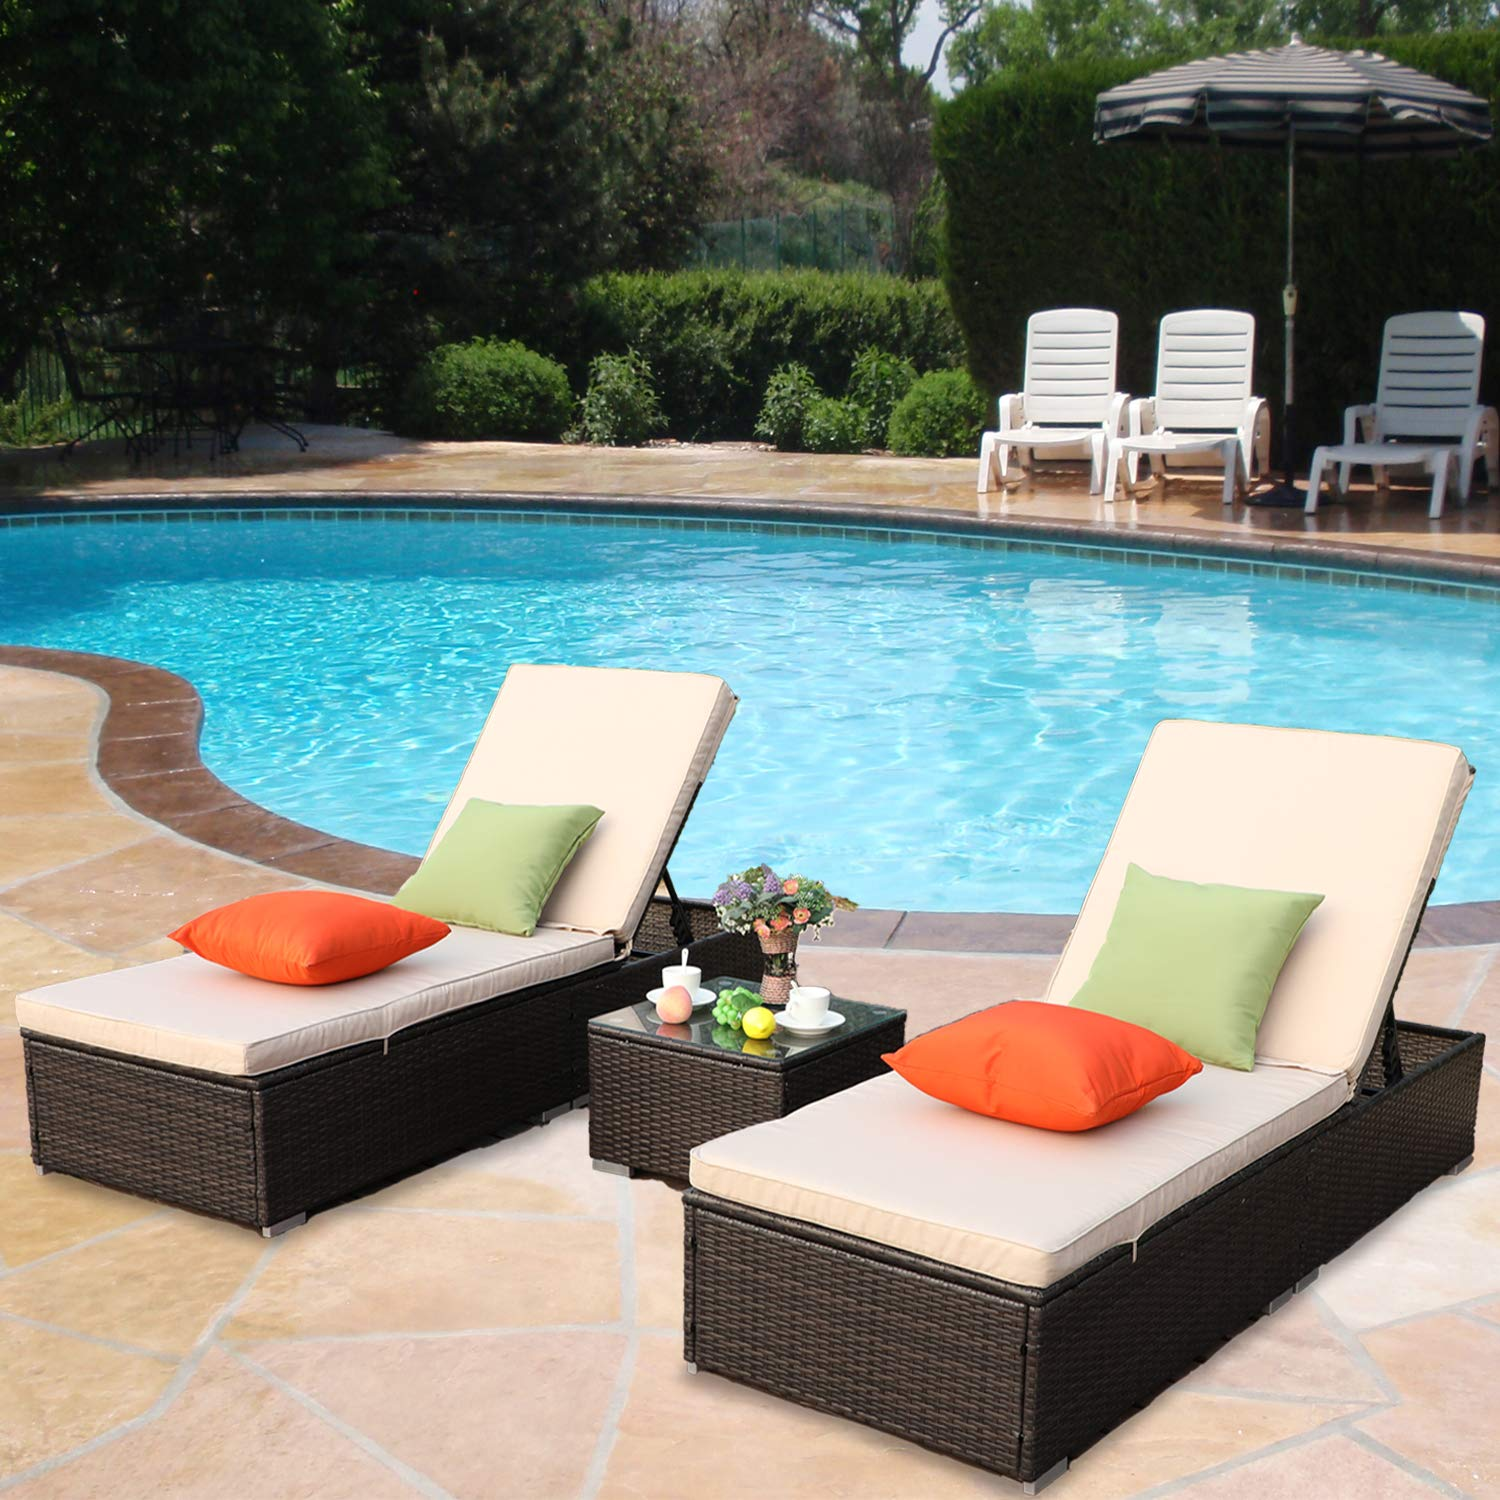 Fabulous Htth Outdoor Chaise Lounge Easy To Assemble Chaise Longue Thick Comfy Cushion Wicker Lounge Chairs 3 Pcs Chaise Lounge Chair Set For Interior Design Ideas Pimpapslepicentreinfo